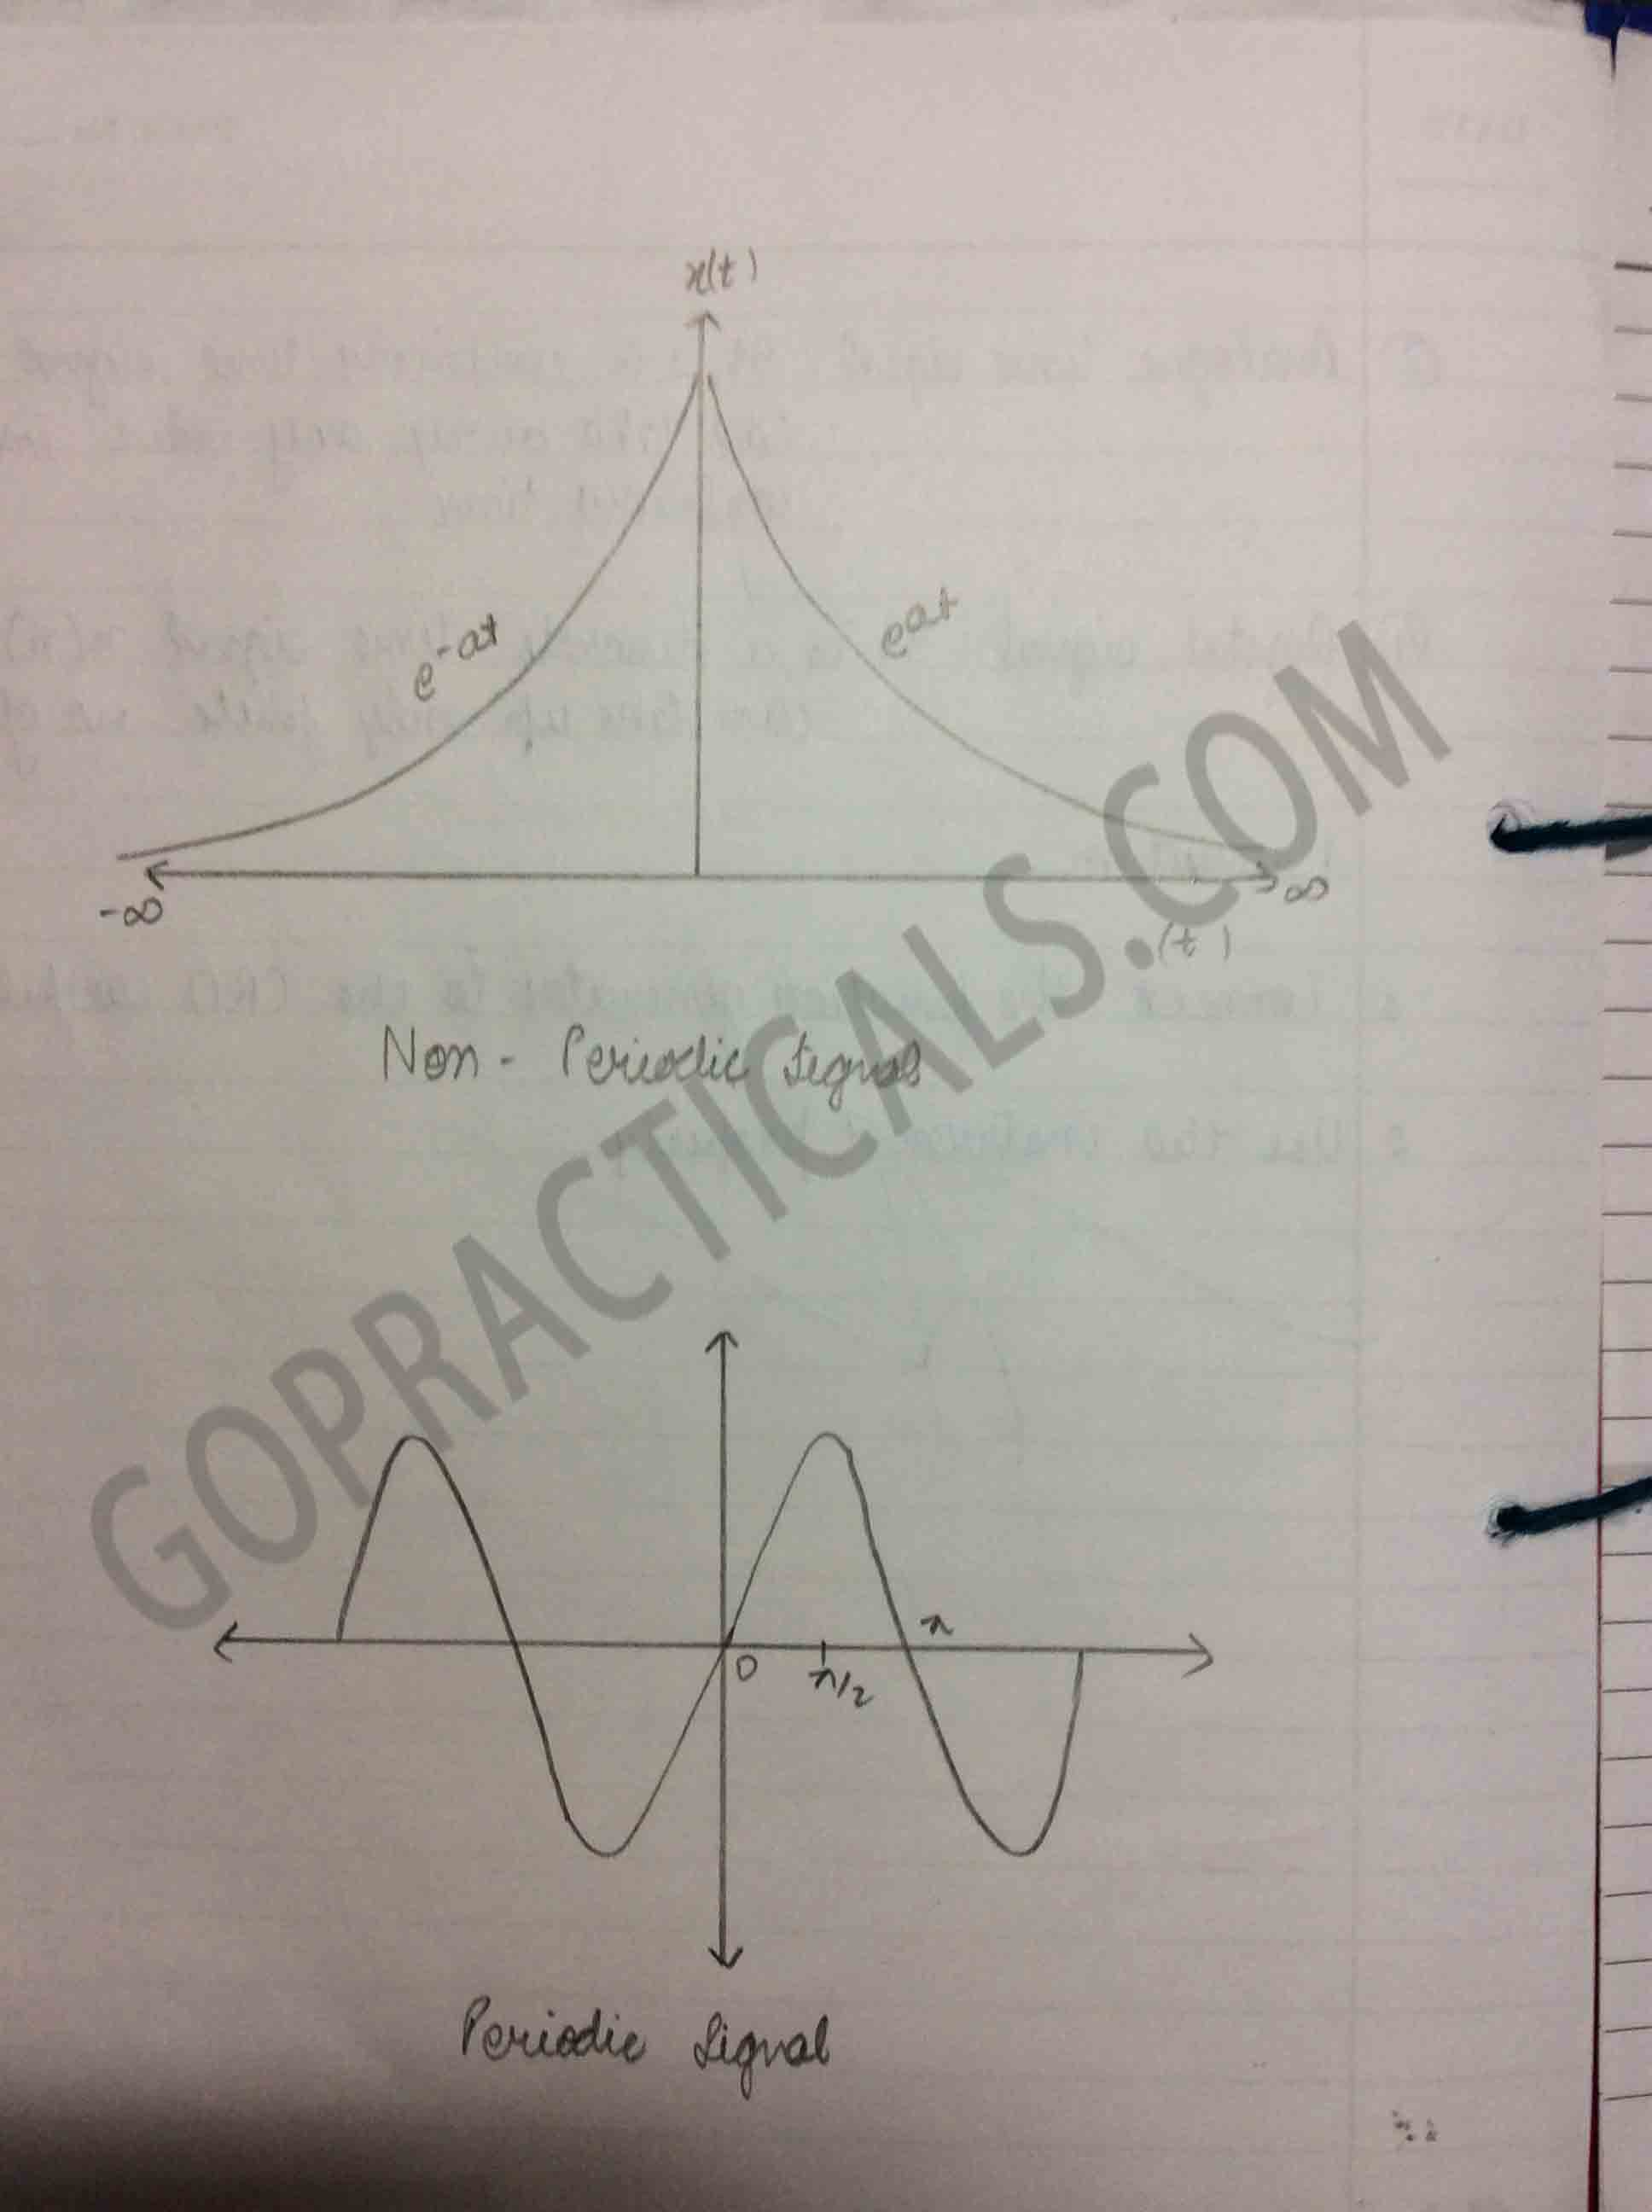 periodic and non periodic functions-2